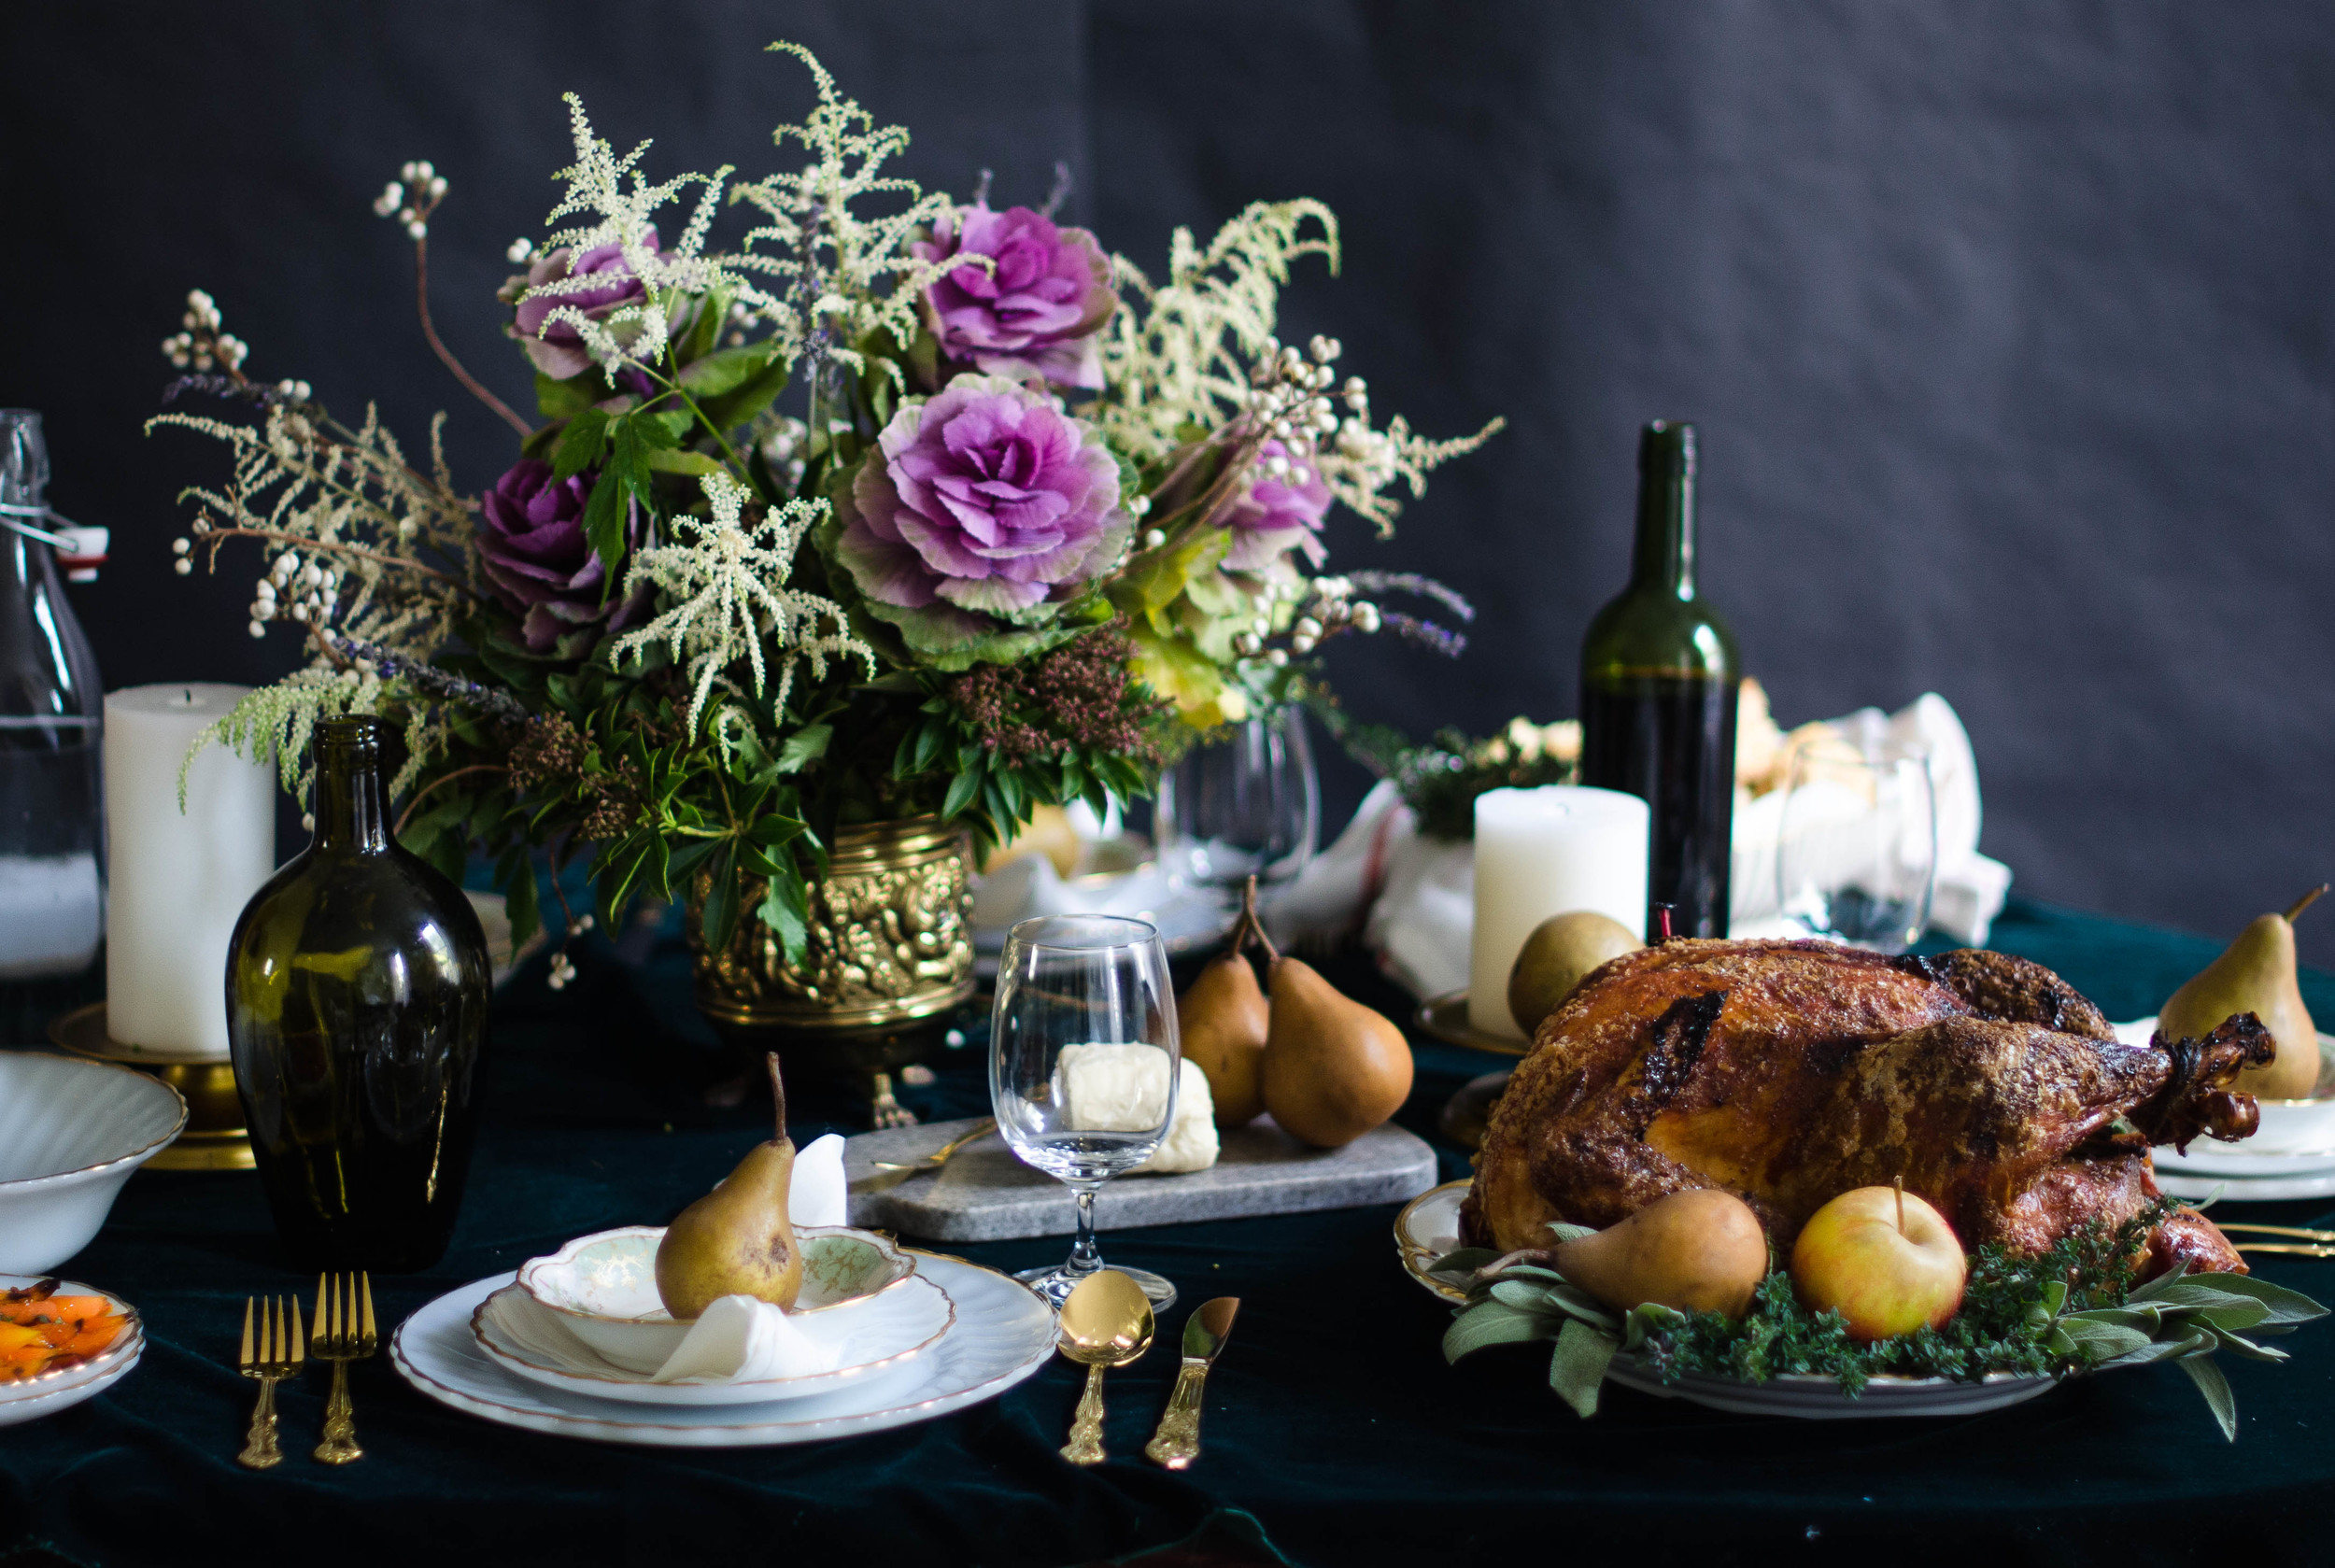 ROSE & IVY JOurnal Thankgiving Table Setting